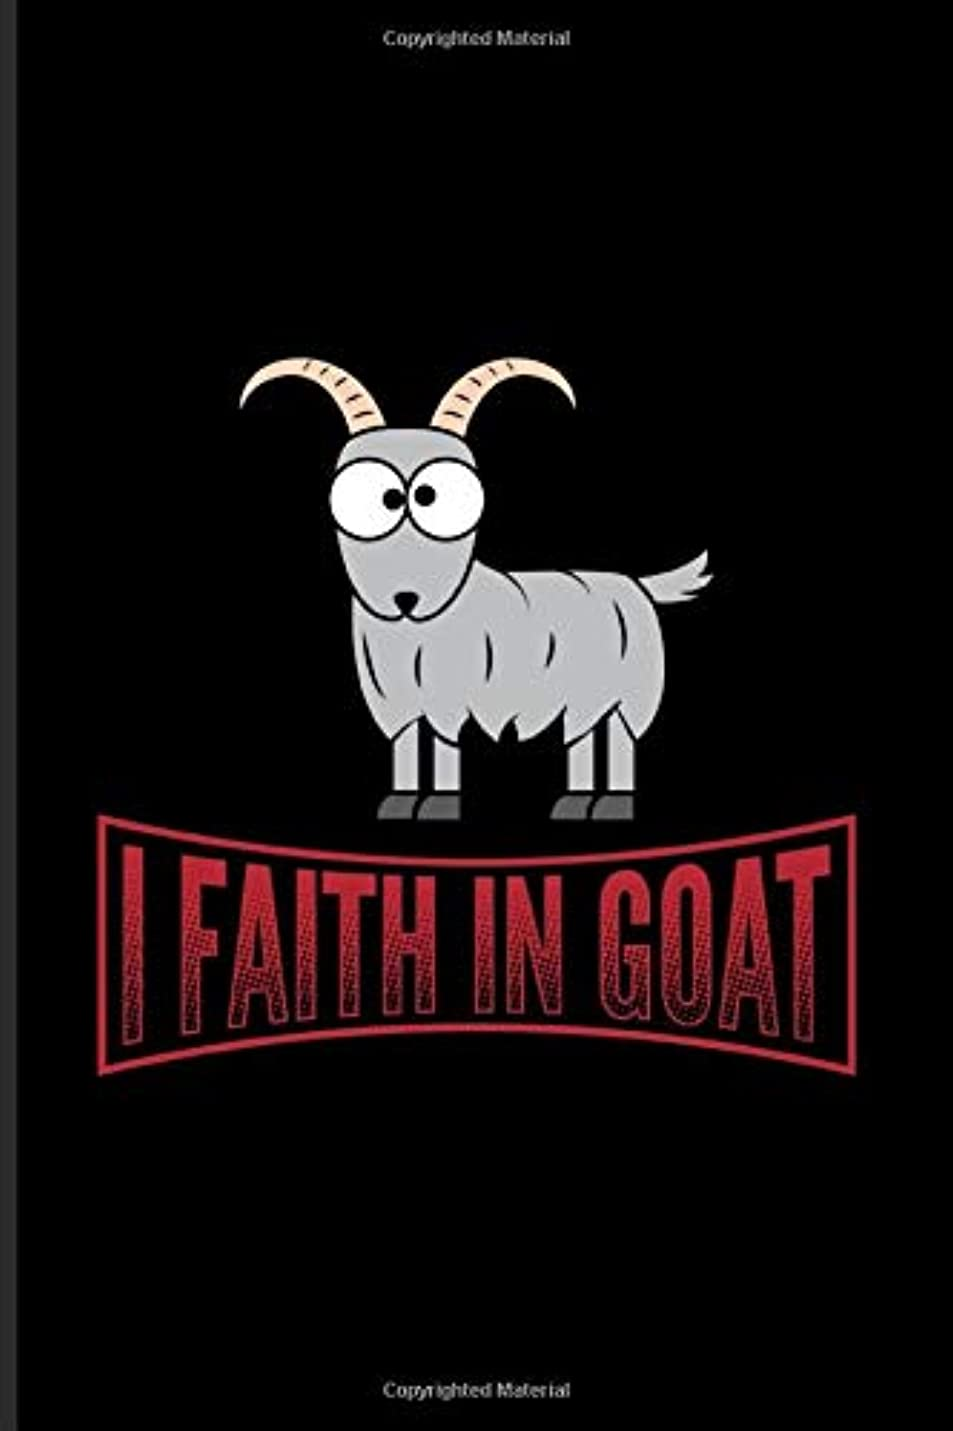 絶望的なエキスクスクスI Faith In Goat: Funny Goat Humor Quote Journal For Nature, Agriculture, Animal Farmer, Barn & Country Live Fans - 6x9 - 100 Blank Lined Pages